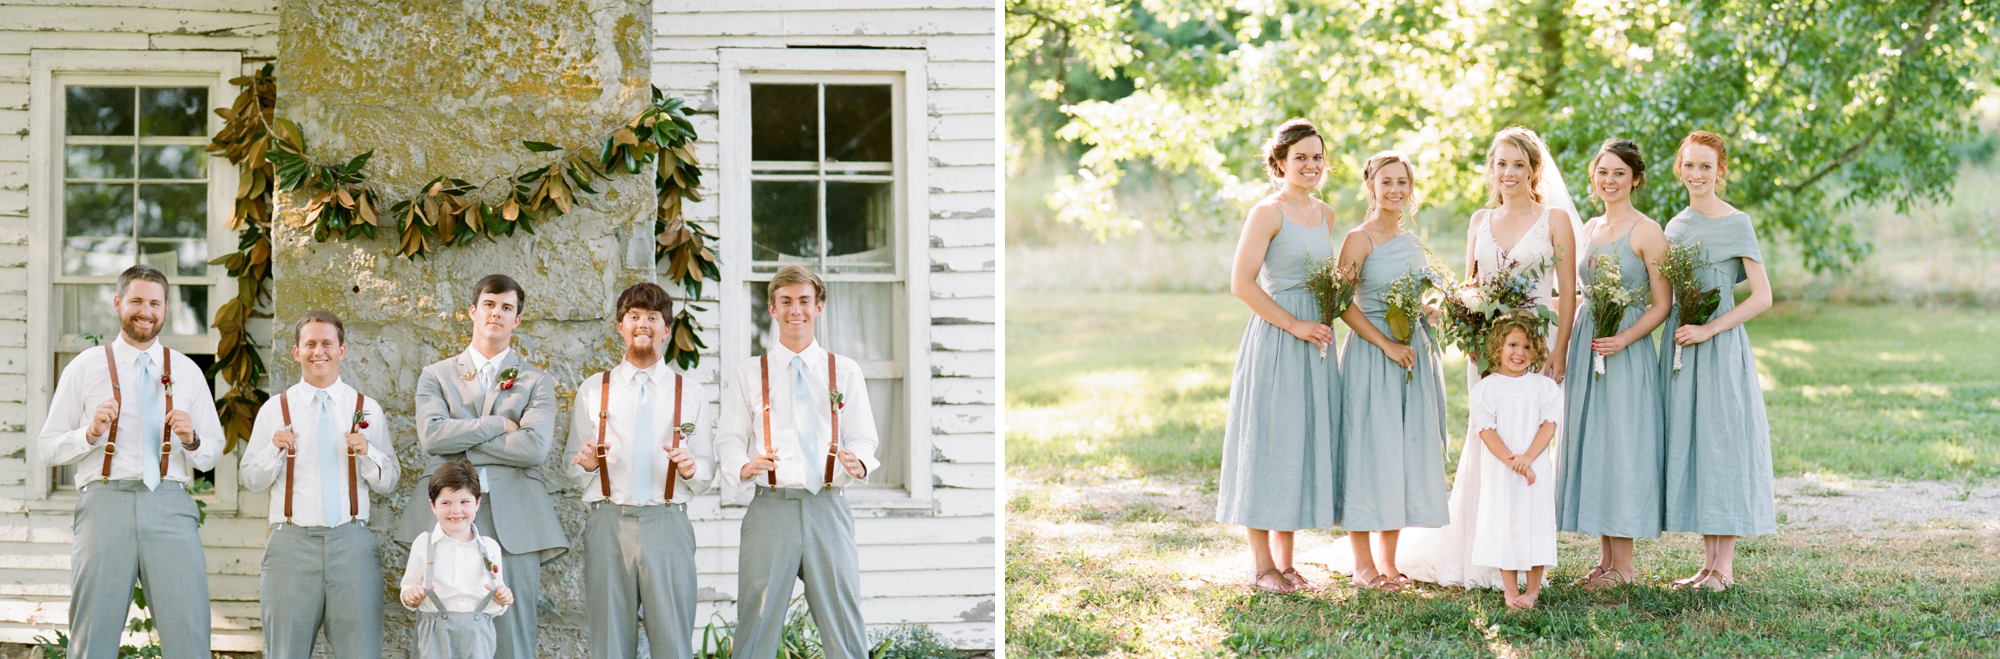 southern wedding film photographer_0039